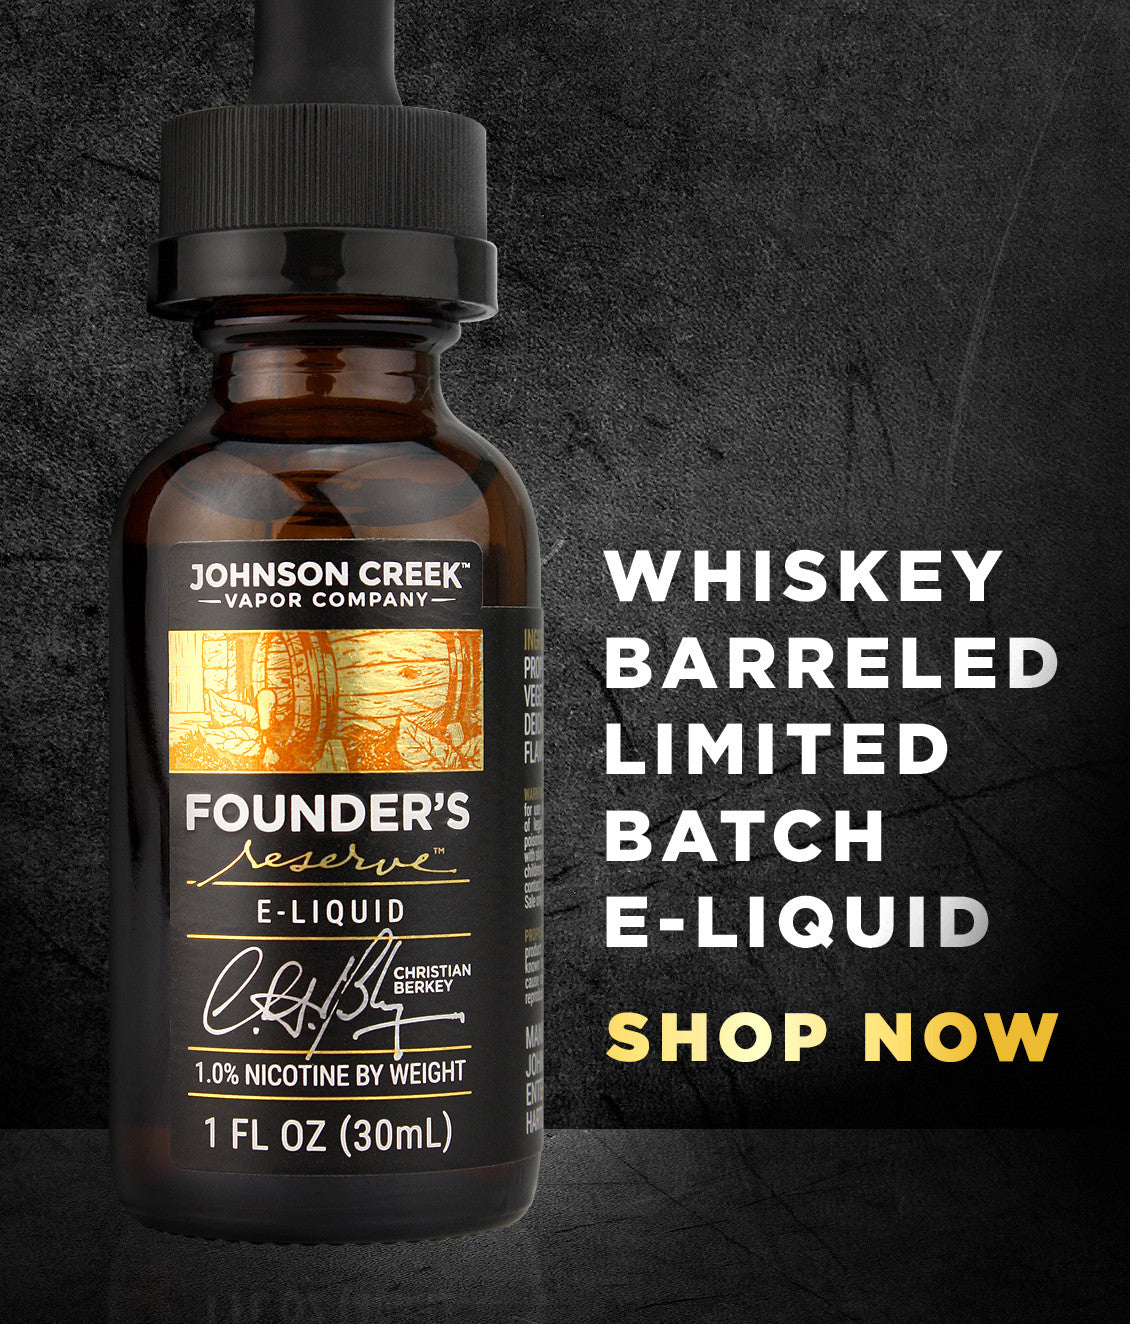 Whiskey-barreled, limited batch, e-liquid available now: